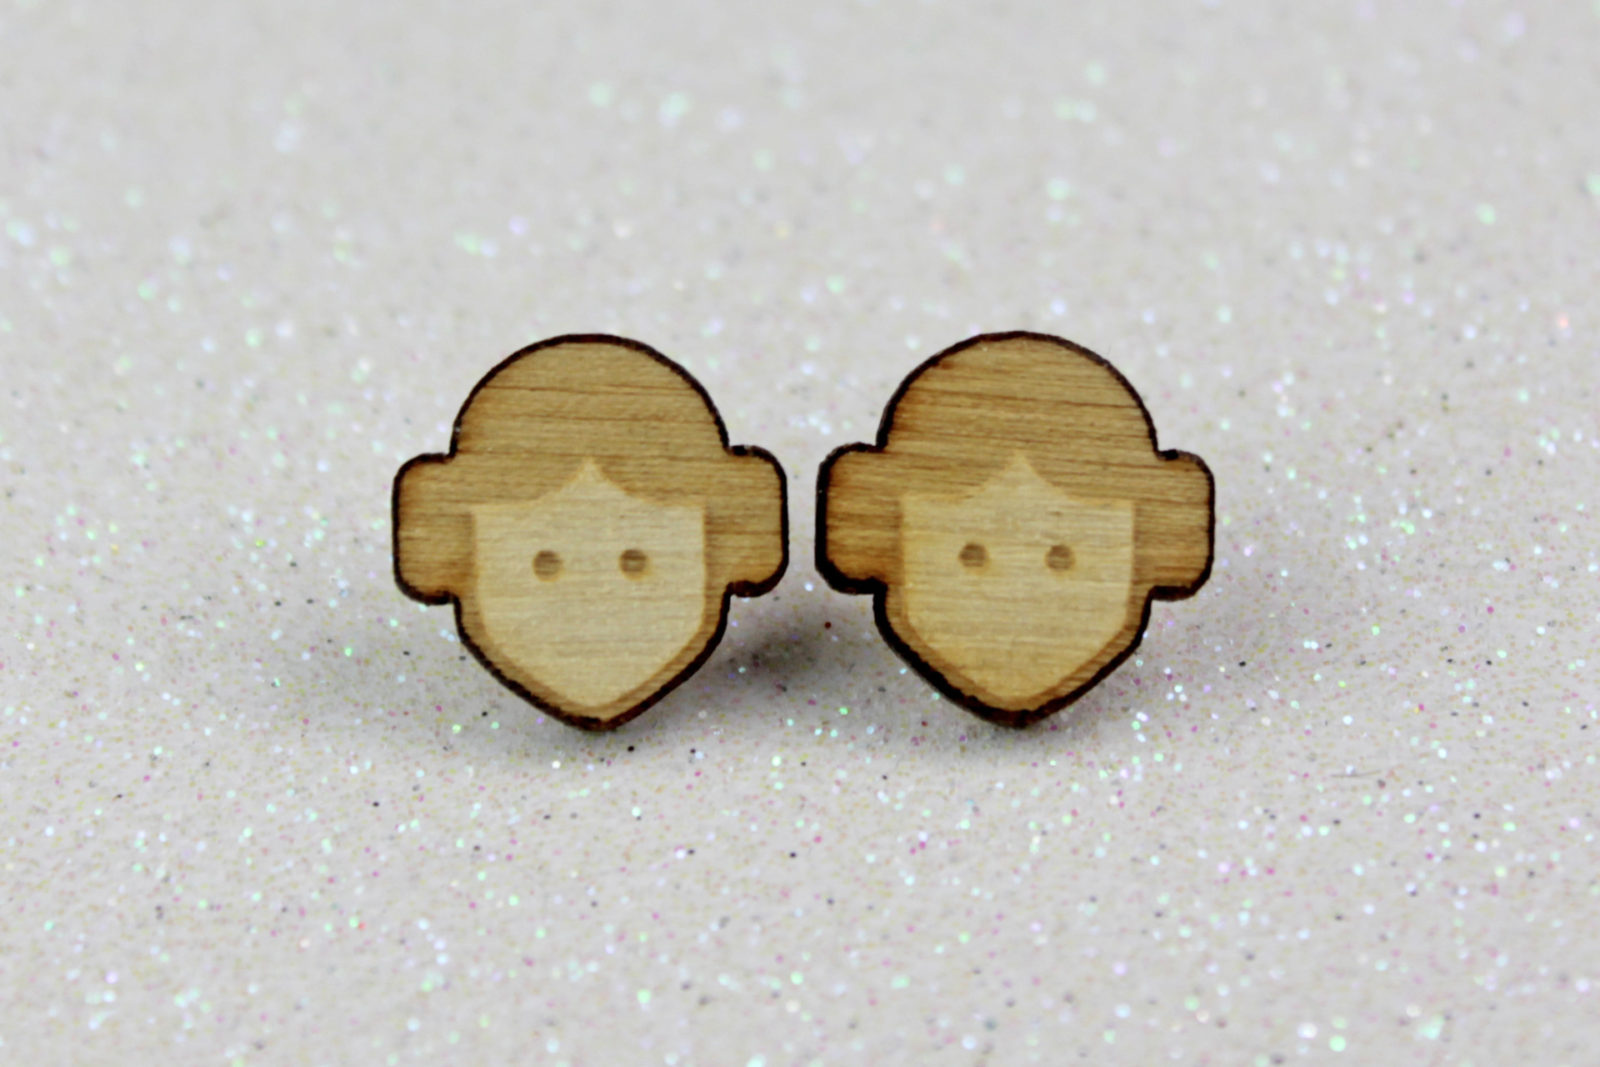 Review – Princess Leia wooden stud earrings